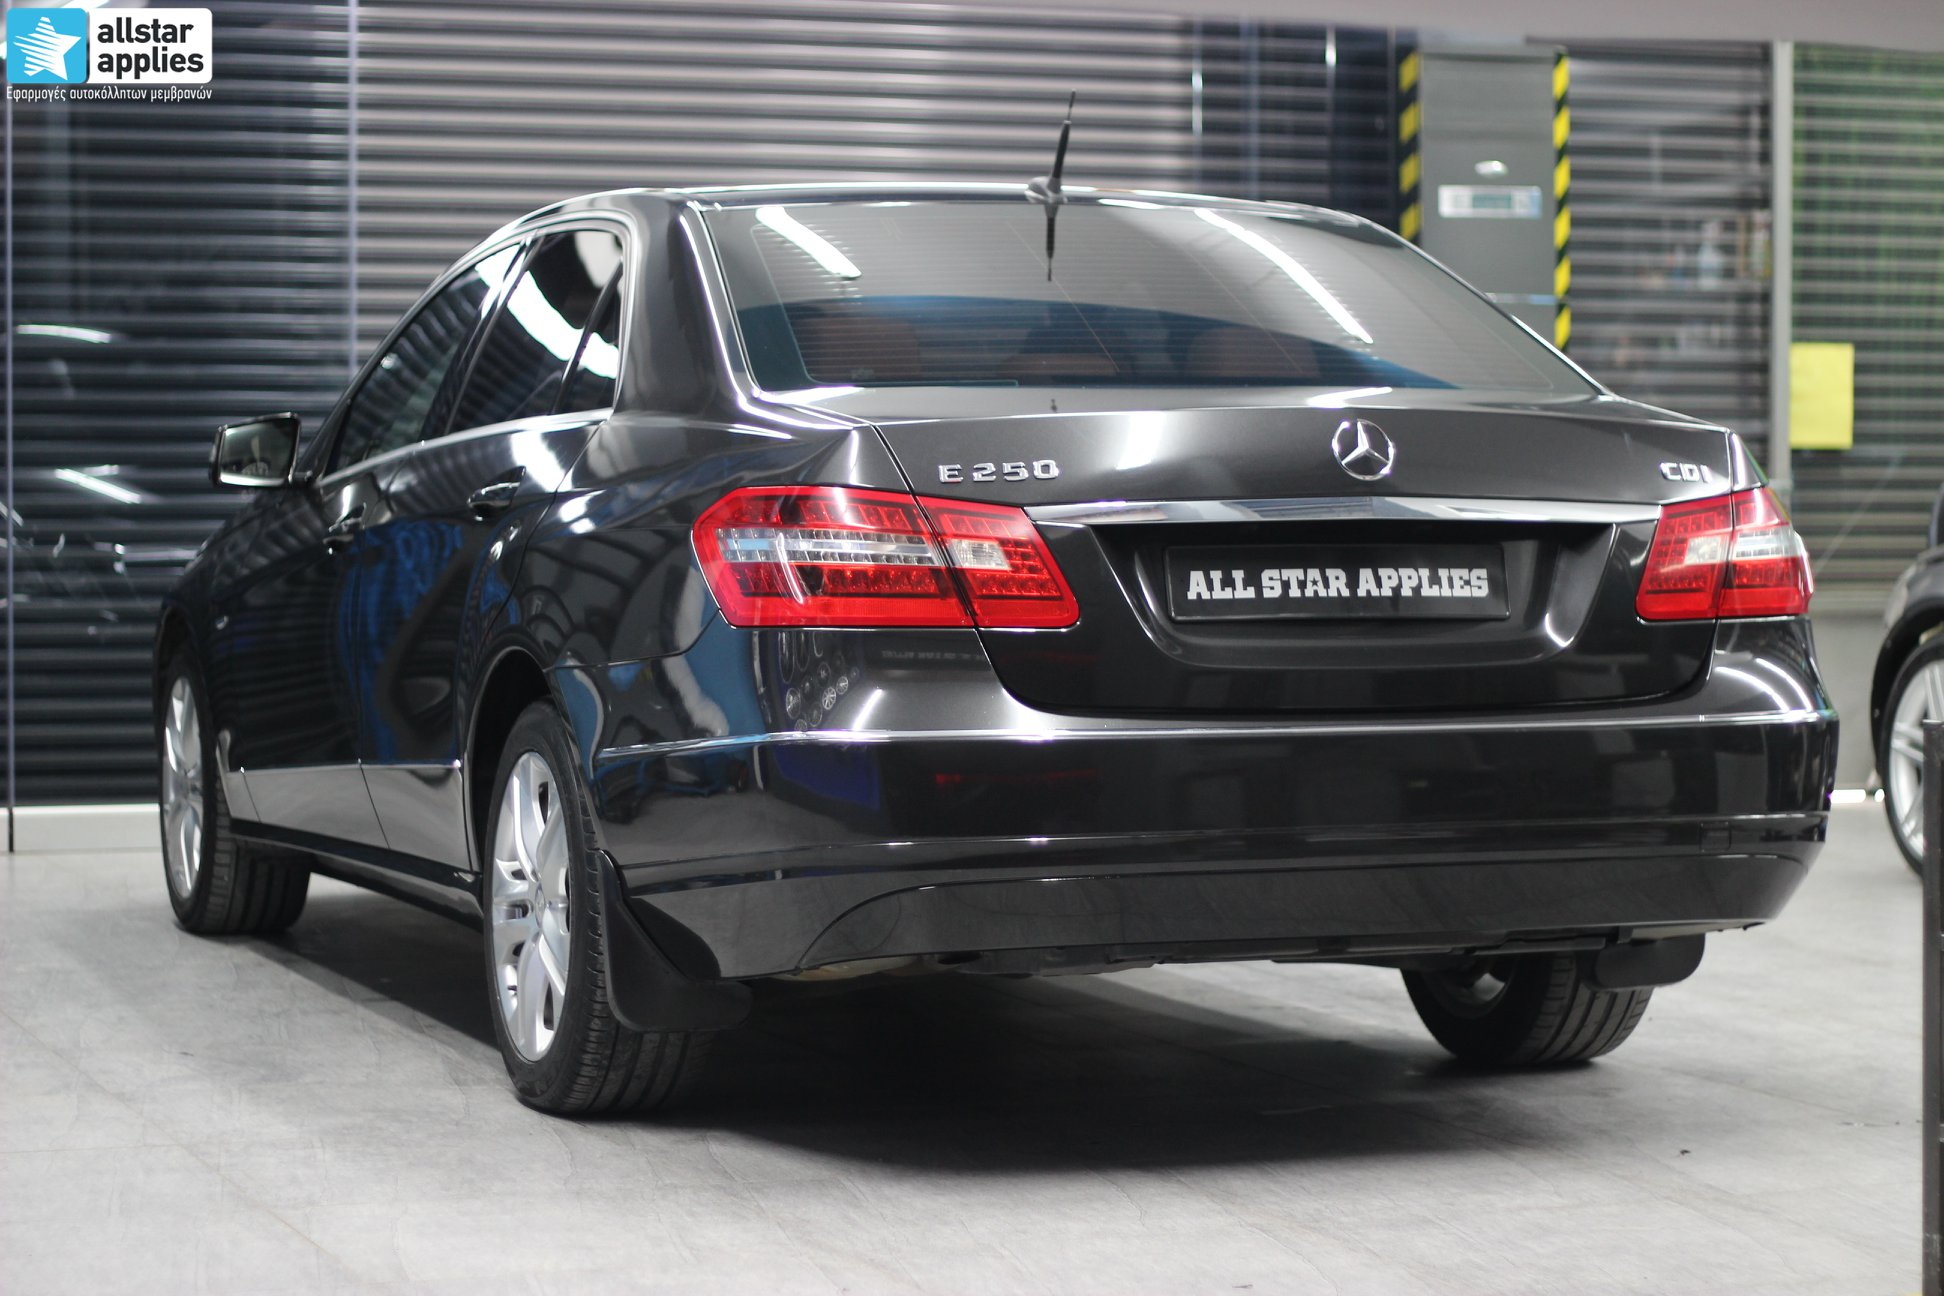 Mercedes E250 - Black Metallic (7)